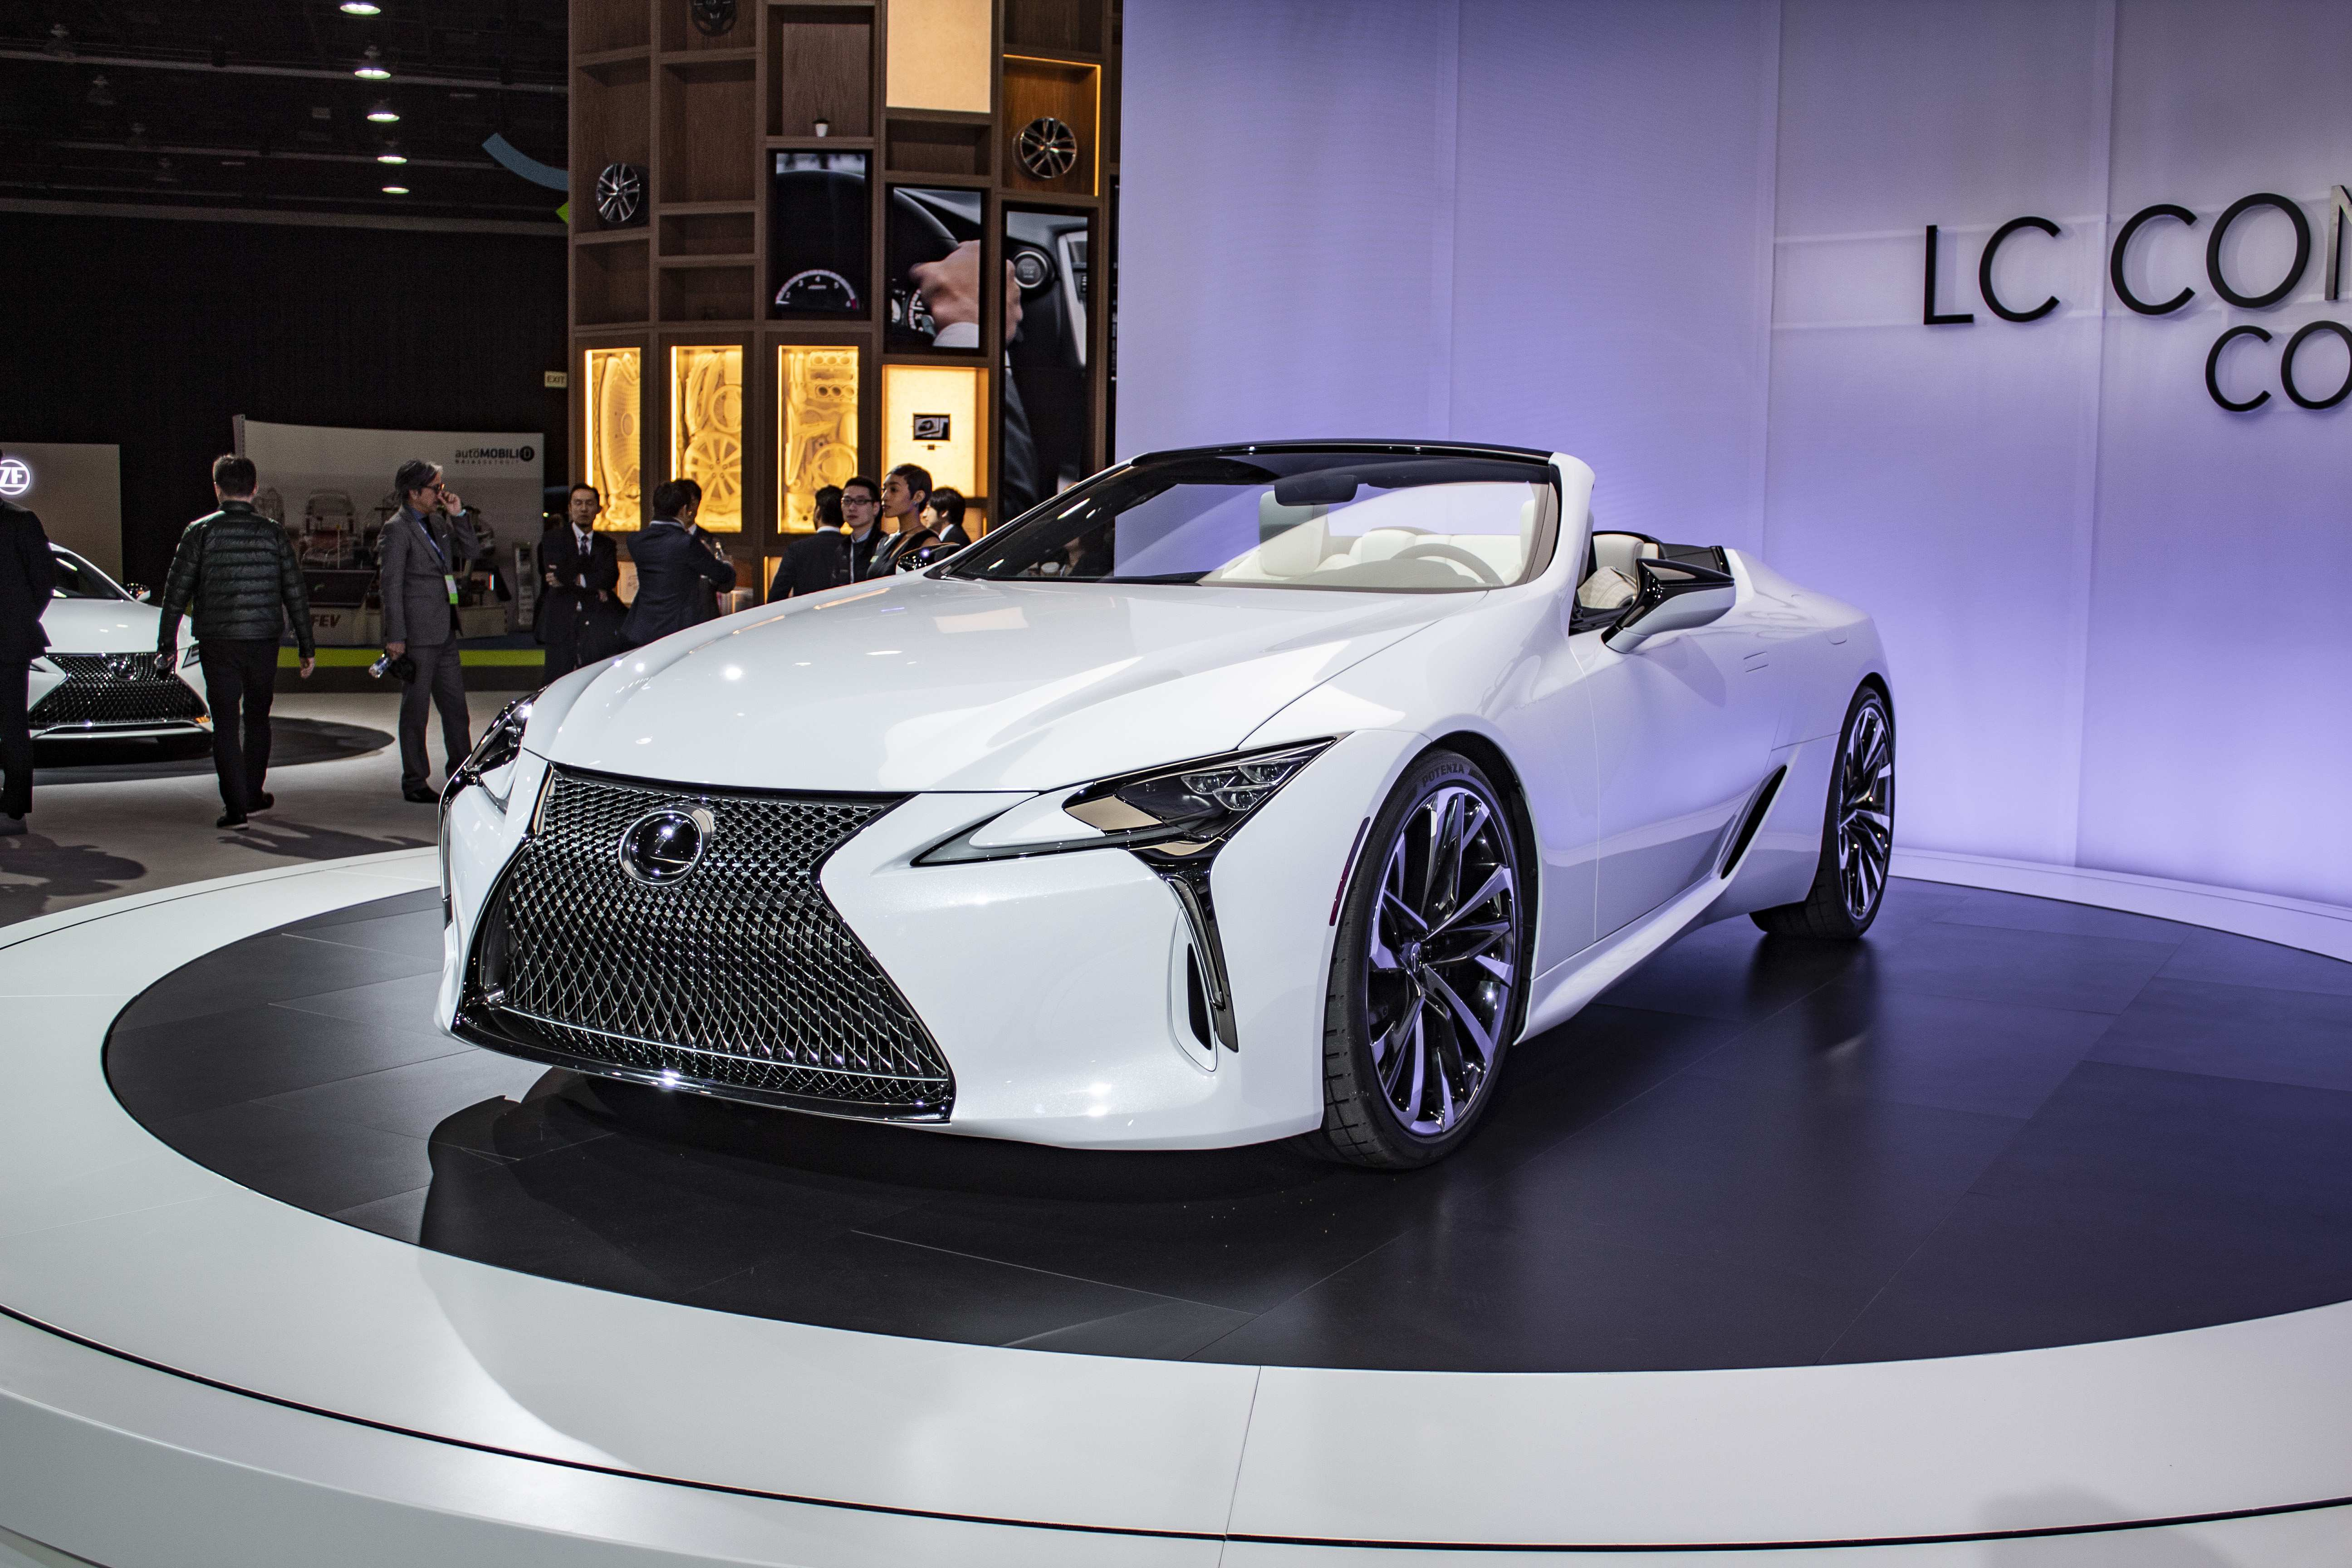 60 Concept of 2019 Lexus Concept Redesign and Concept by 2019 Lexus Concept